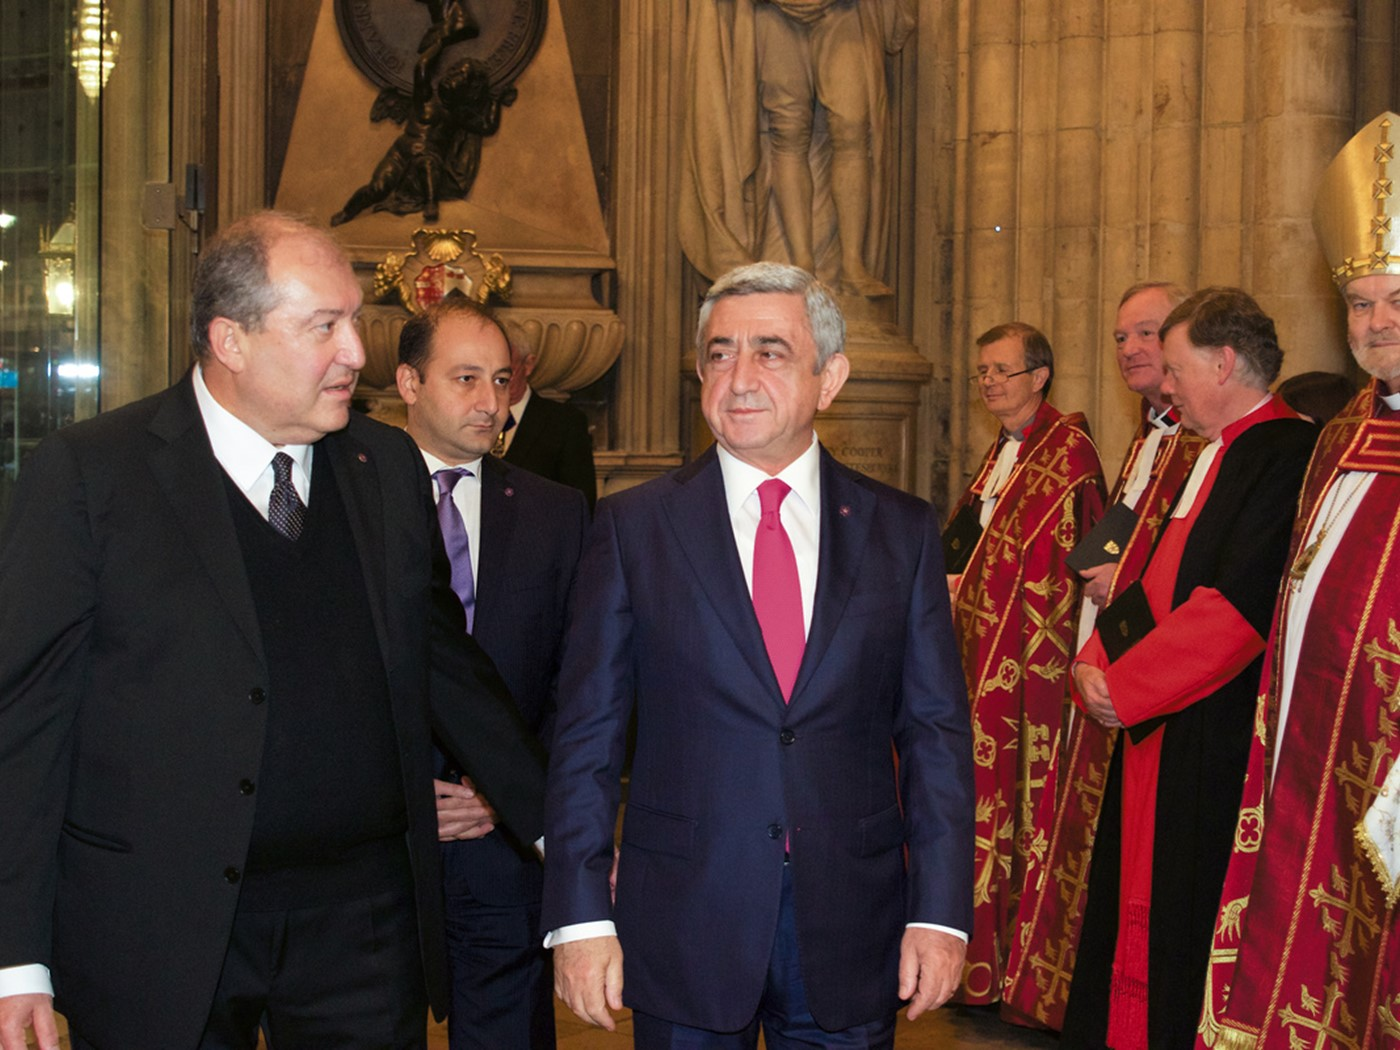 The President of the Republic of Armenia, His Excellency Serzh Sargsyan; and the Ambassador from the Republic of Armenia to the Court of St James, His Excellency Dr Armen Sarkissian